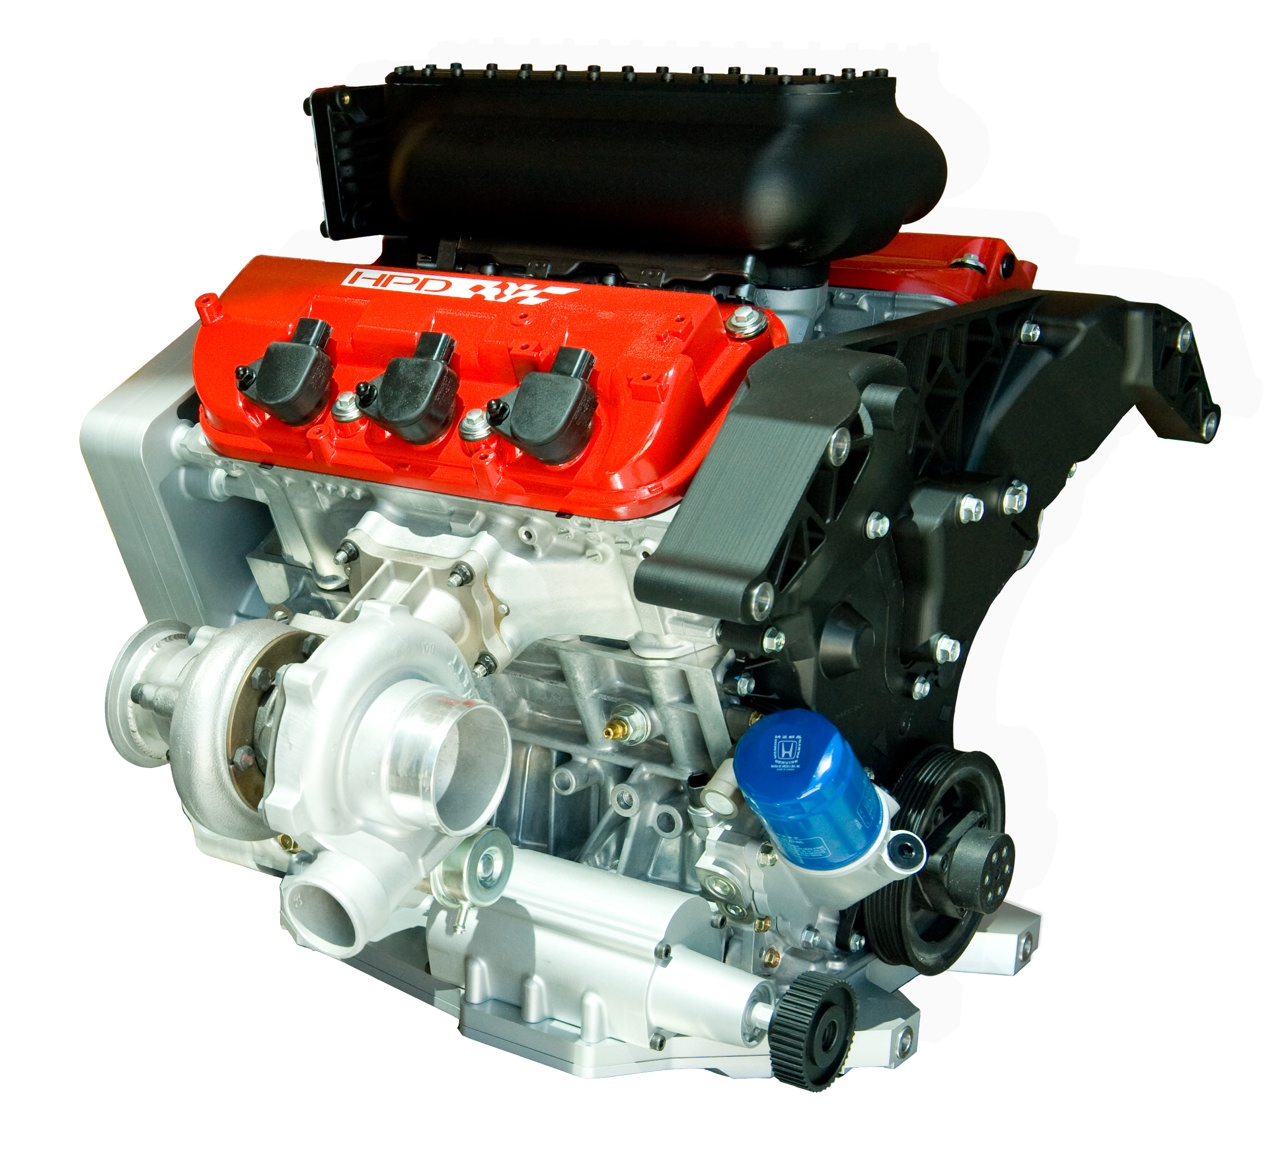 HPD 2.8L V6 For The LMP2 Race Cars